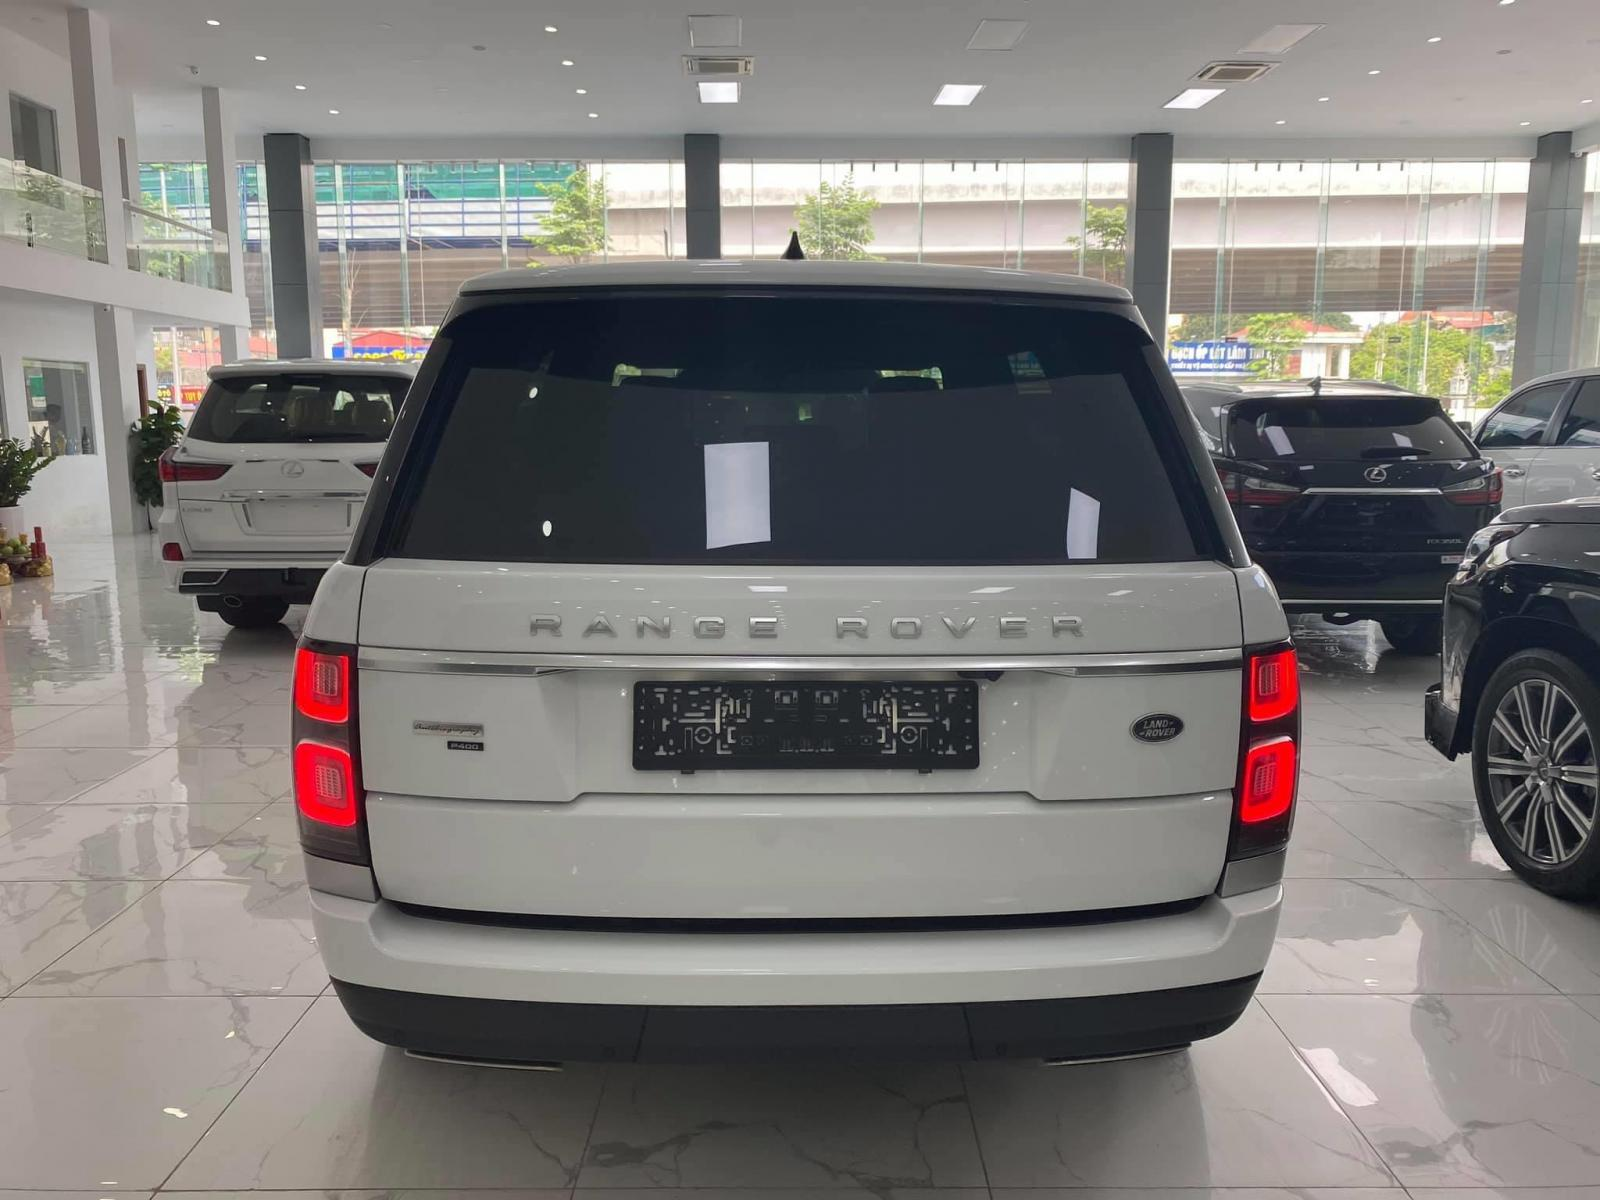 Bán Land Rover Range Rover Autobiography LWB 3.0,model 2021, giao ngay